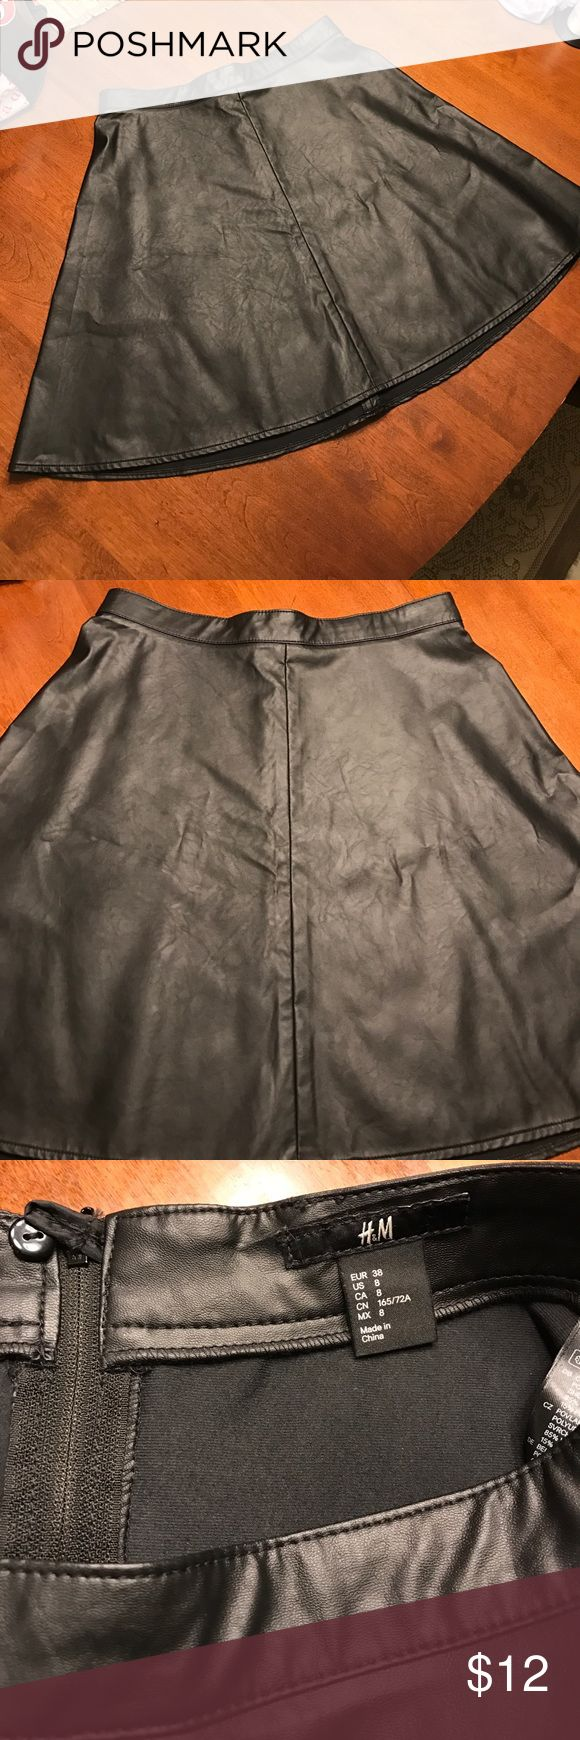 Faux Leather Skater Skirt Faux leather skater skirt. Size 8. From H&M. Never worn. Flares out on the bottom. High waisted. Zipper in back. H&M Skirts Mini